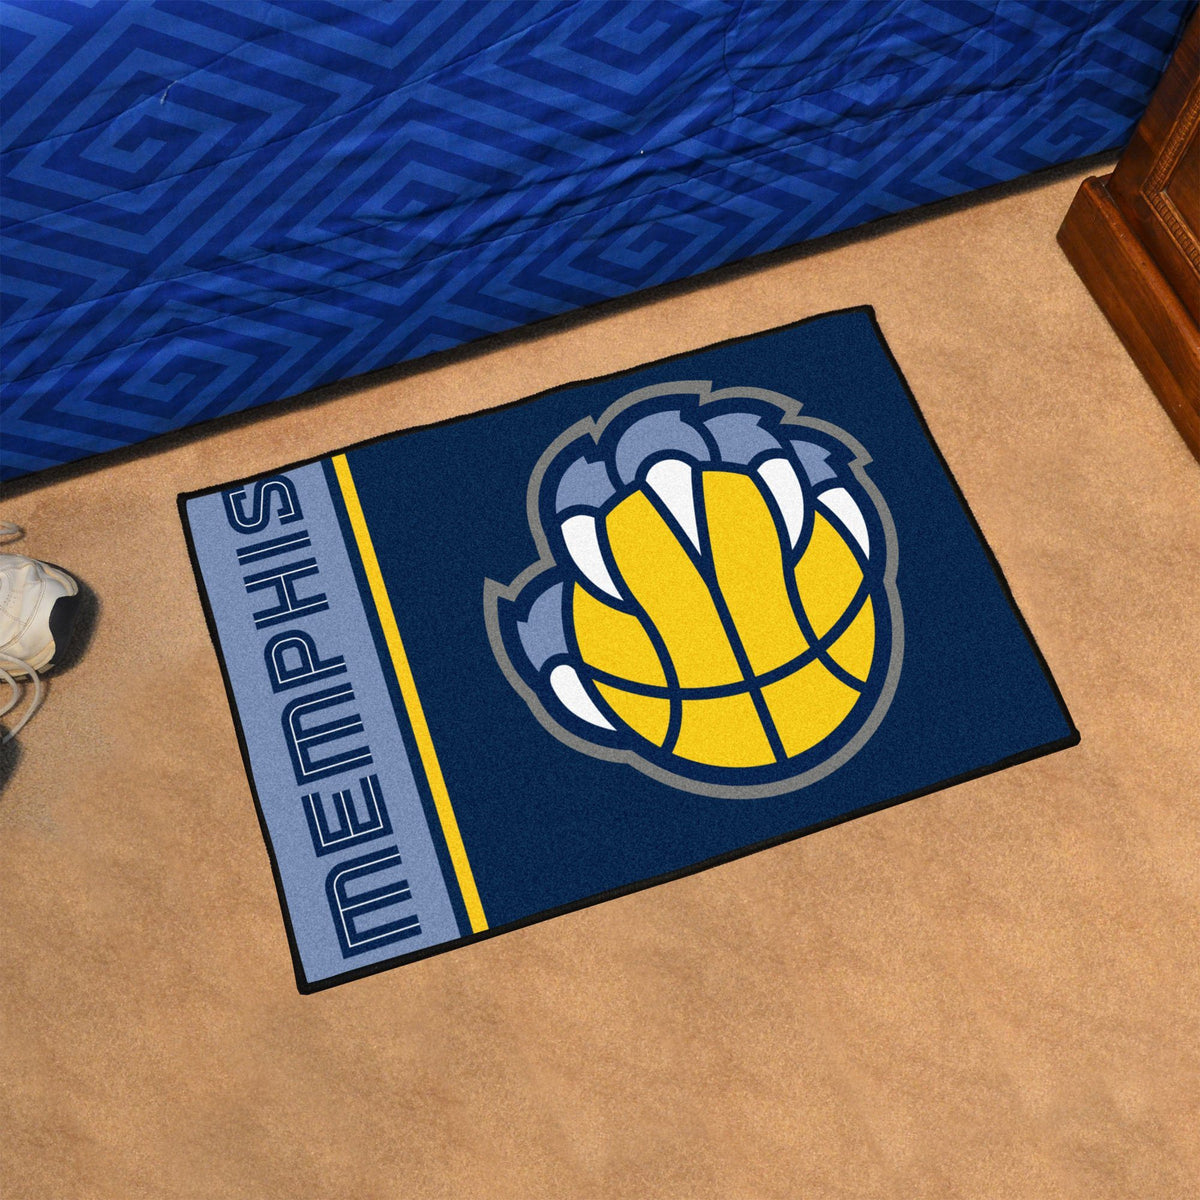 NBA - Uniform Starter Mat NBA Mats, Rectangular Mats, Uniform Starter Mat, NBA, Home Fan Mats Memphis Grizzlies